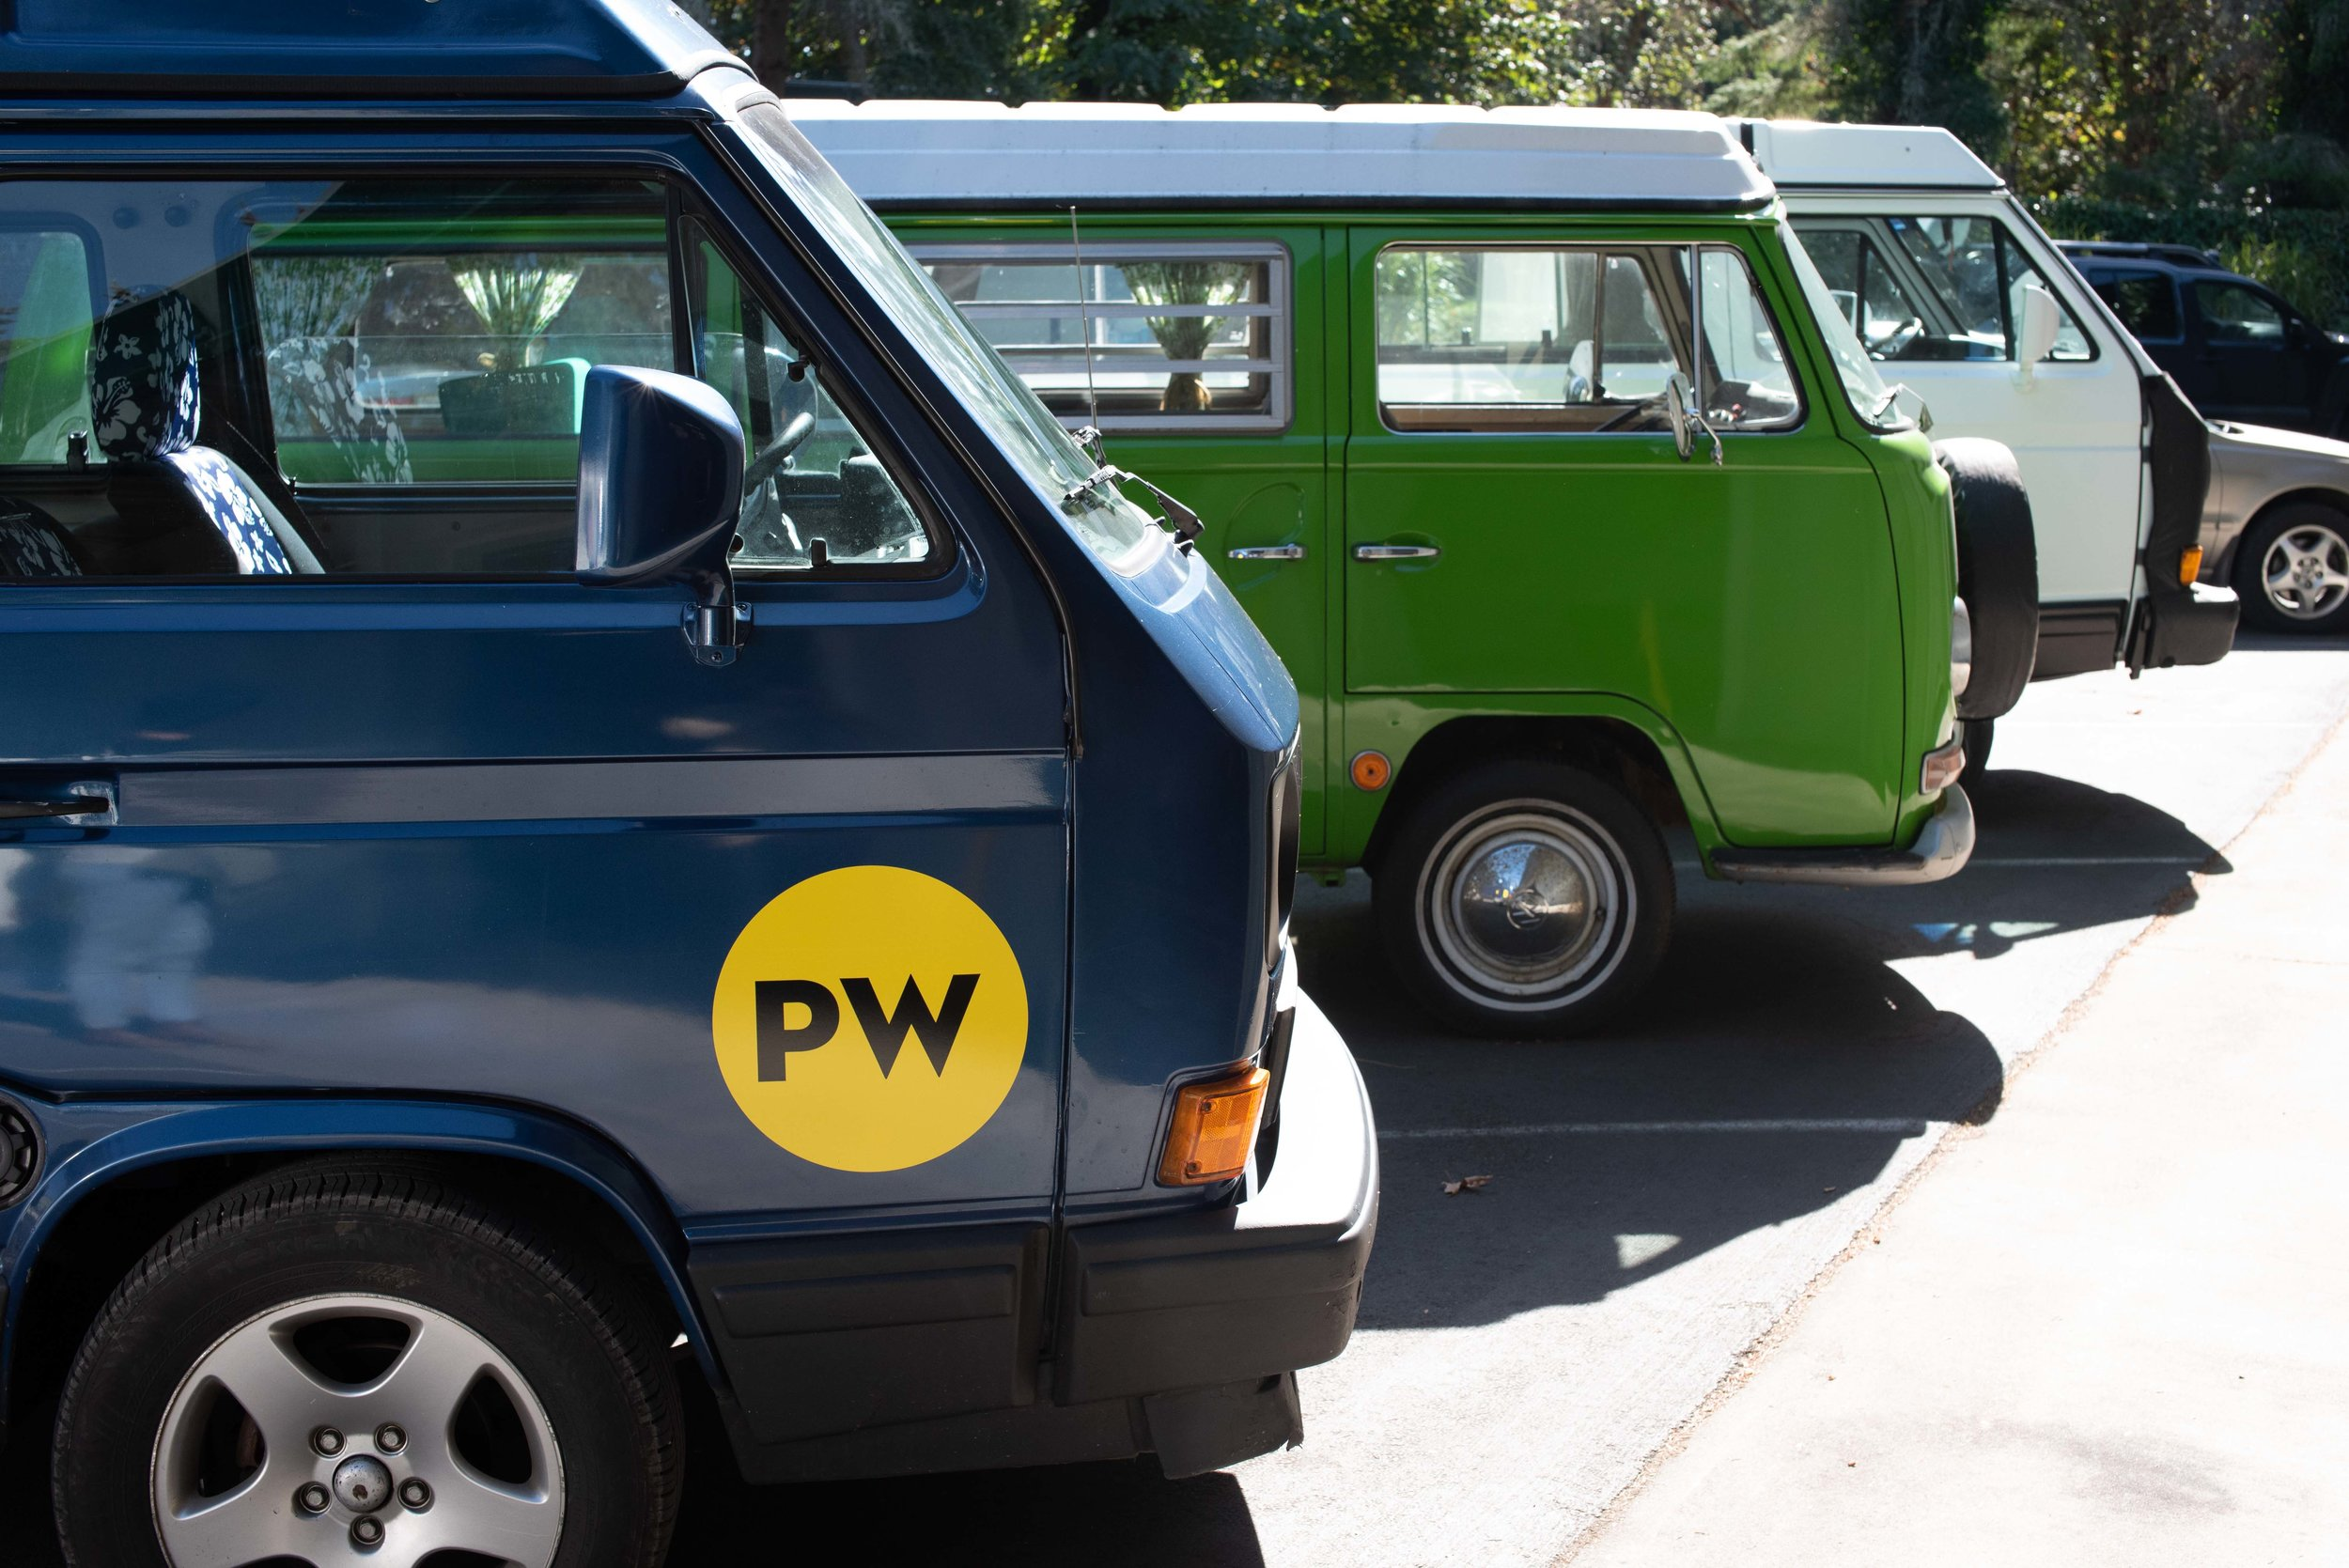 Some of Pacwesty's vans. Our van, Ernie, is the blue one in the front.